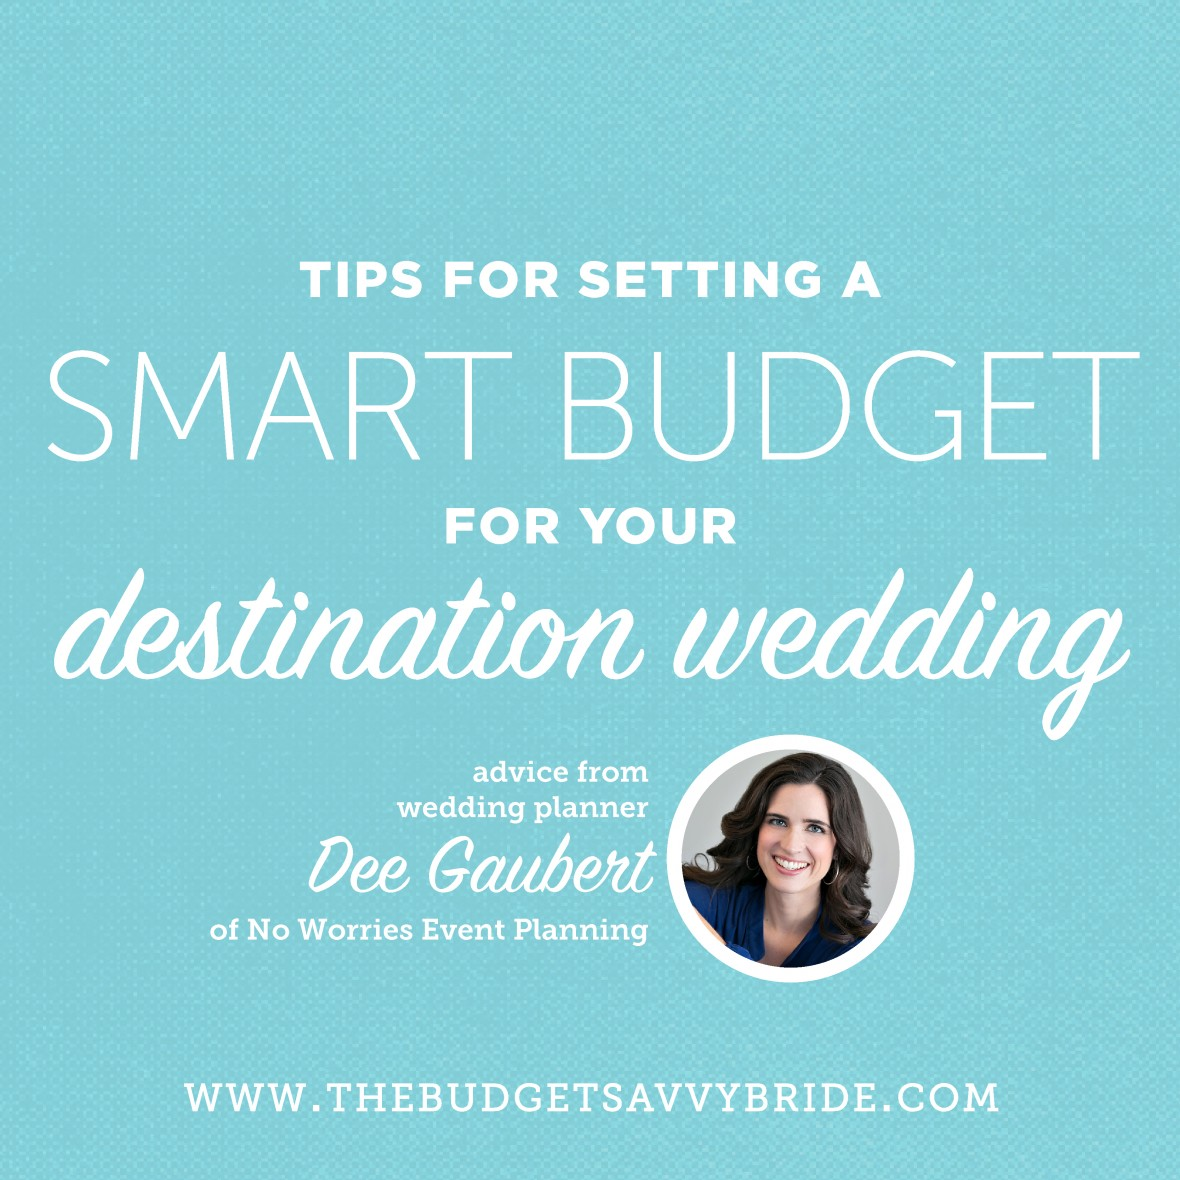 Setting a smart budget for your destination wedding